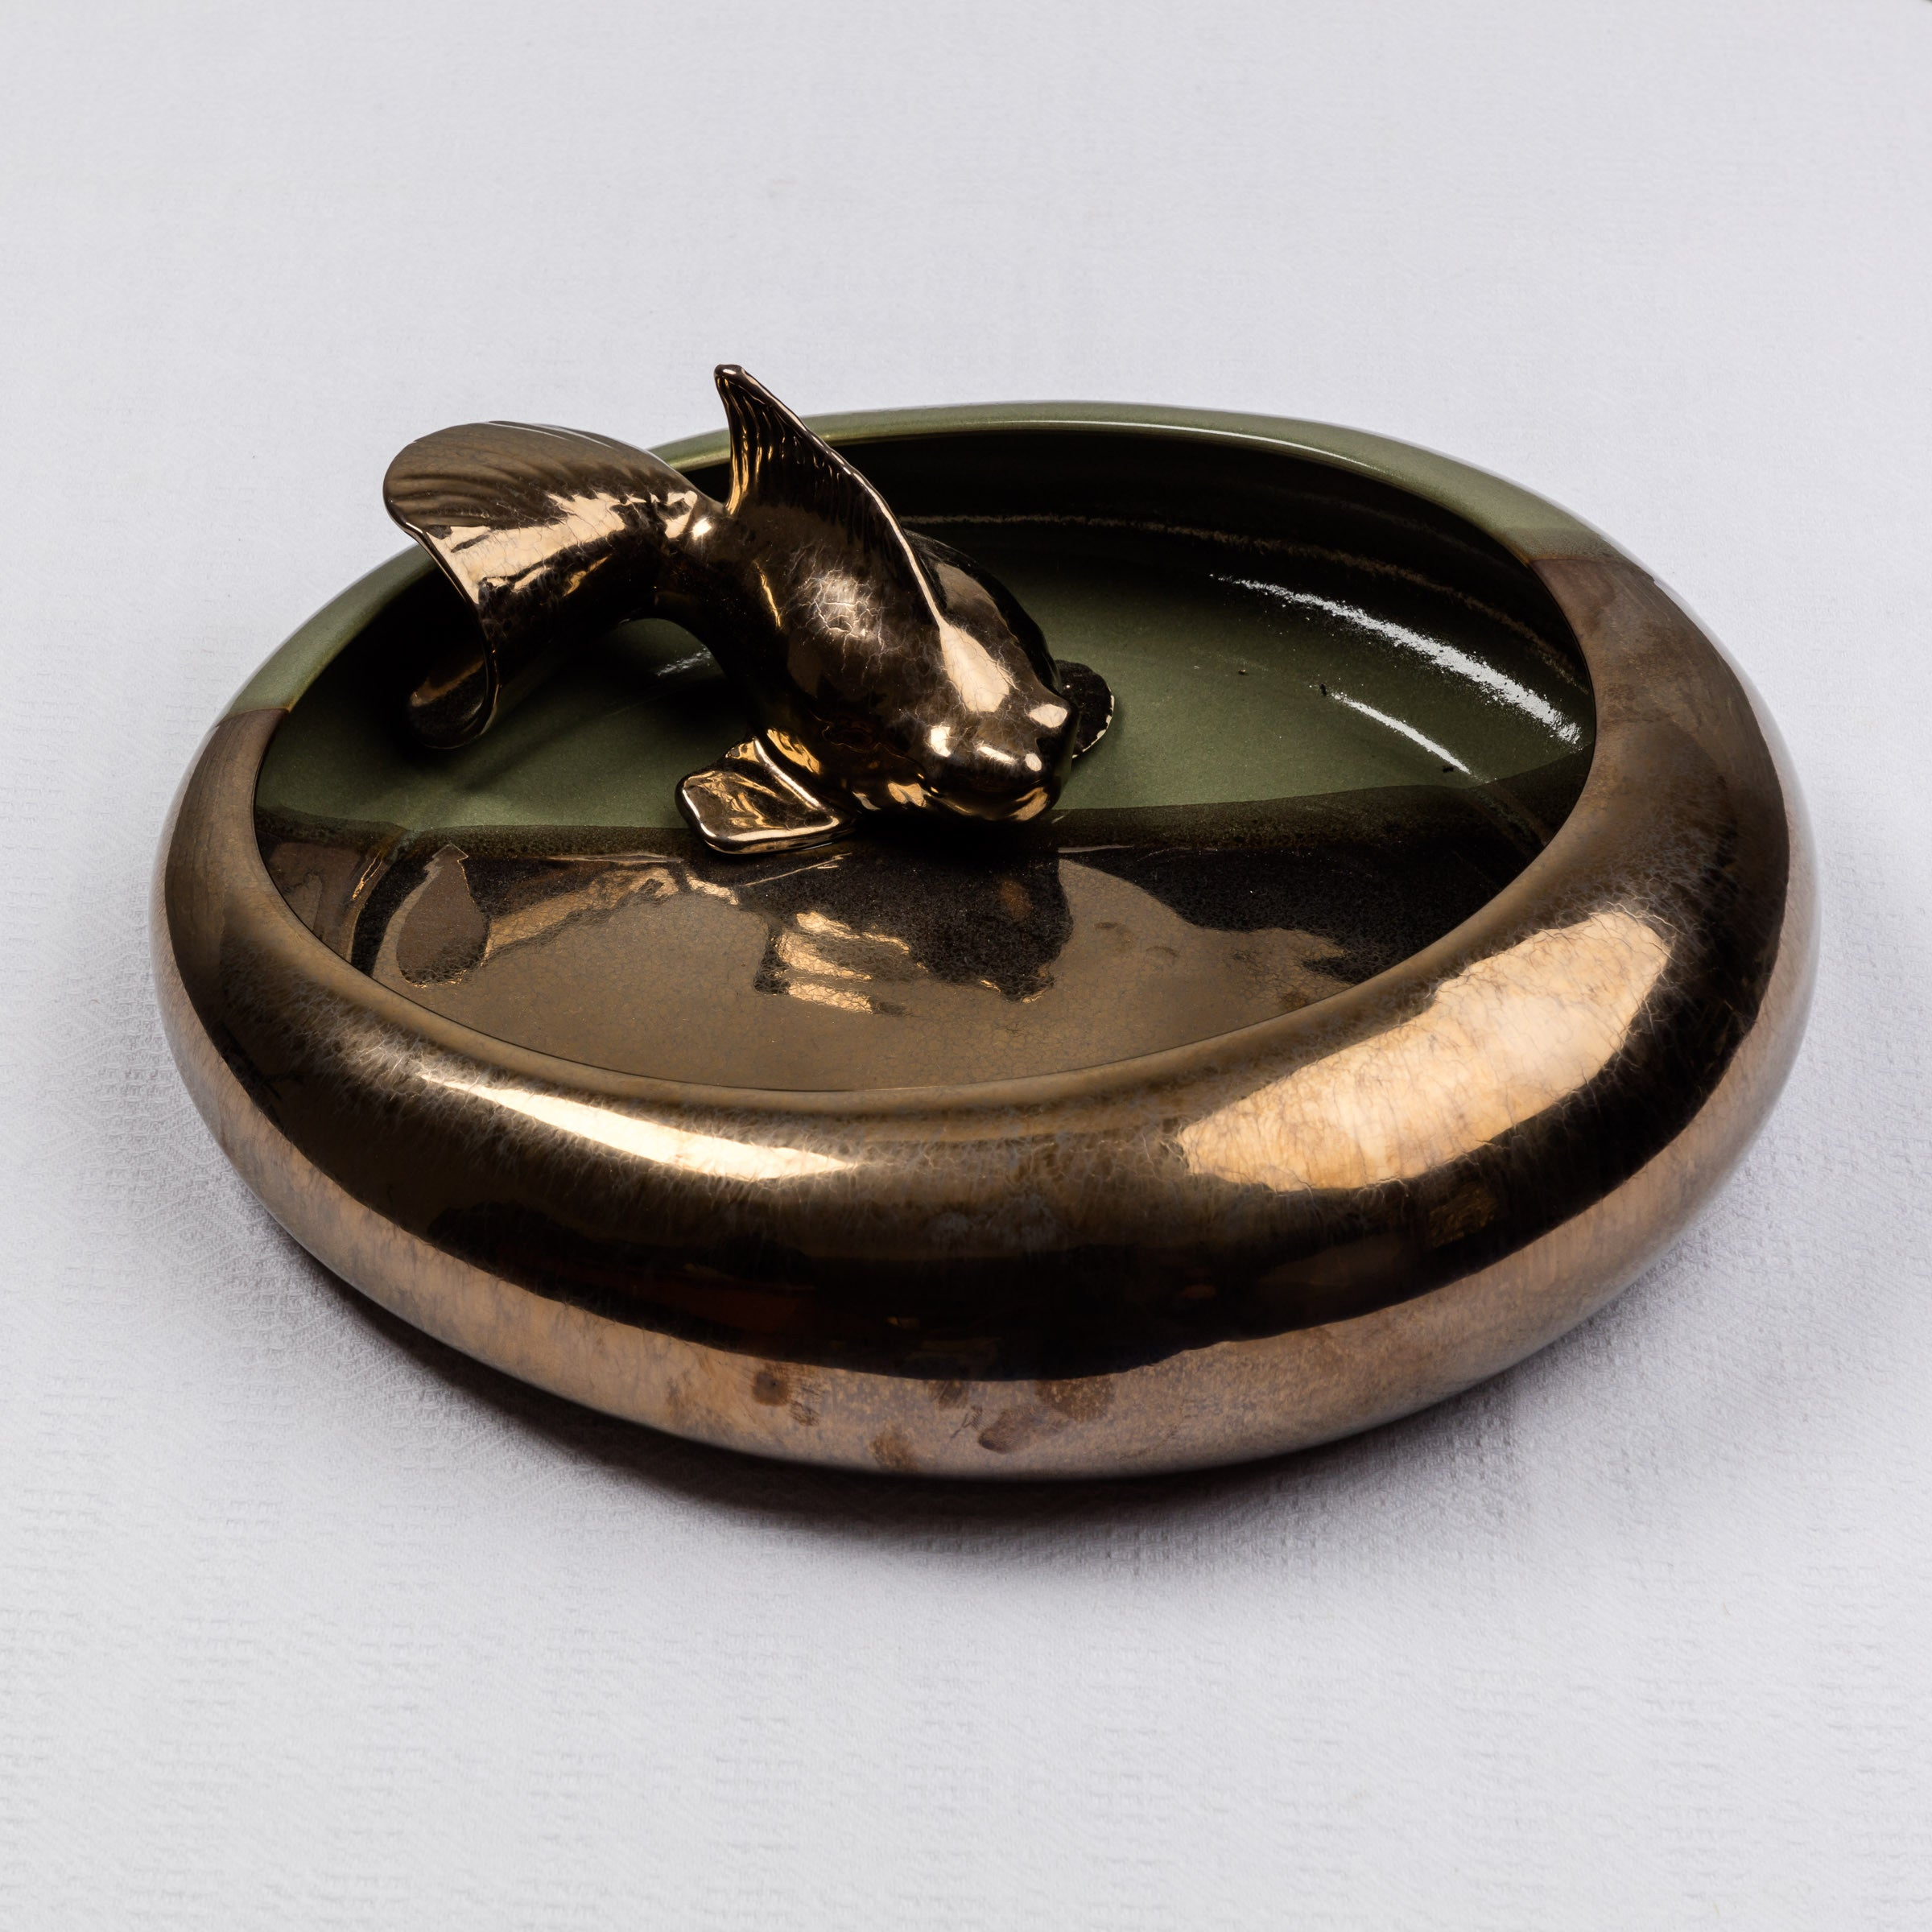 Decorative Olive and Bronze Koi Bowl